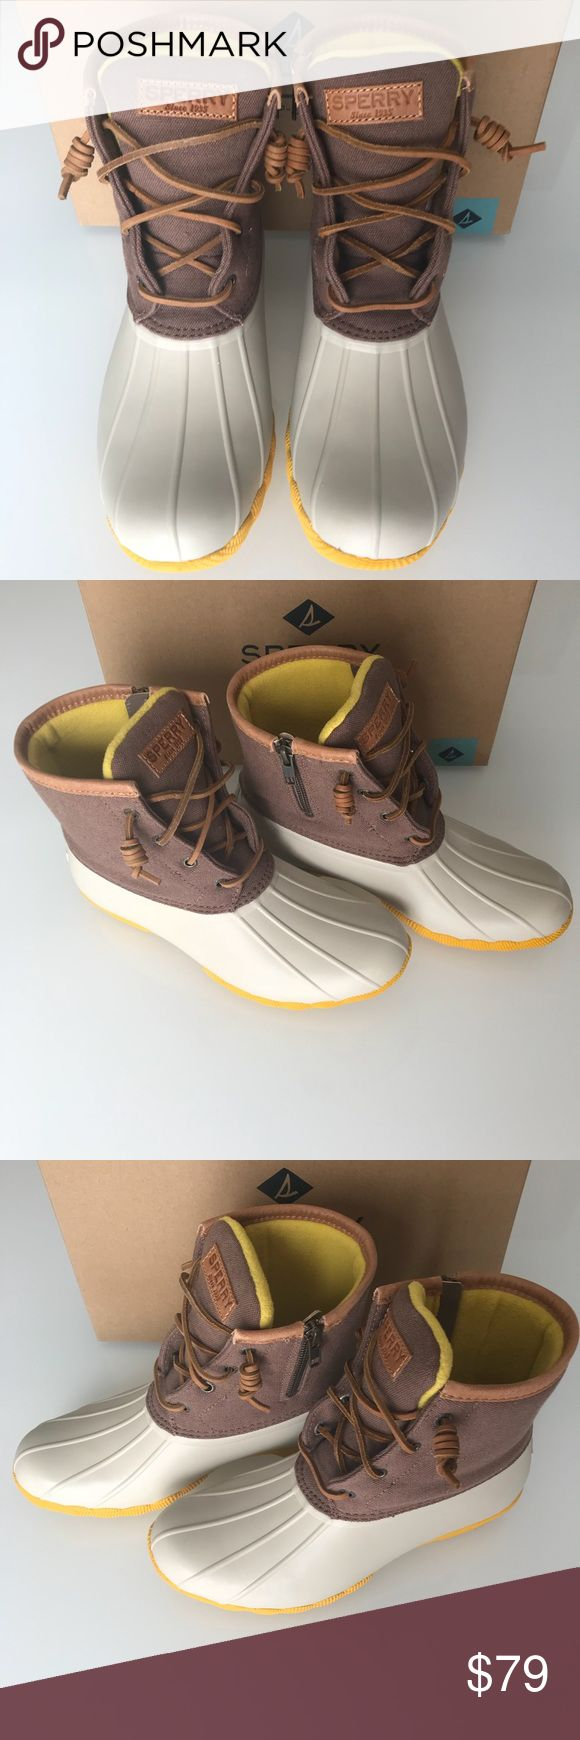 Sperry Duck Boots Women's Sz 8.5 **Brand New In Box**  Sperry Duck Boots Size Women 8.5 Saltwater Ivory/Tan/Yellow Sperry Shoes Winter & Rain Boots